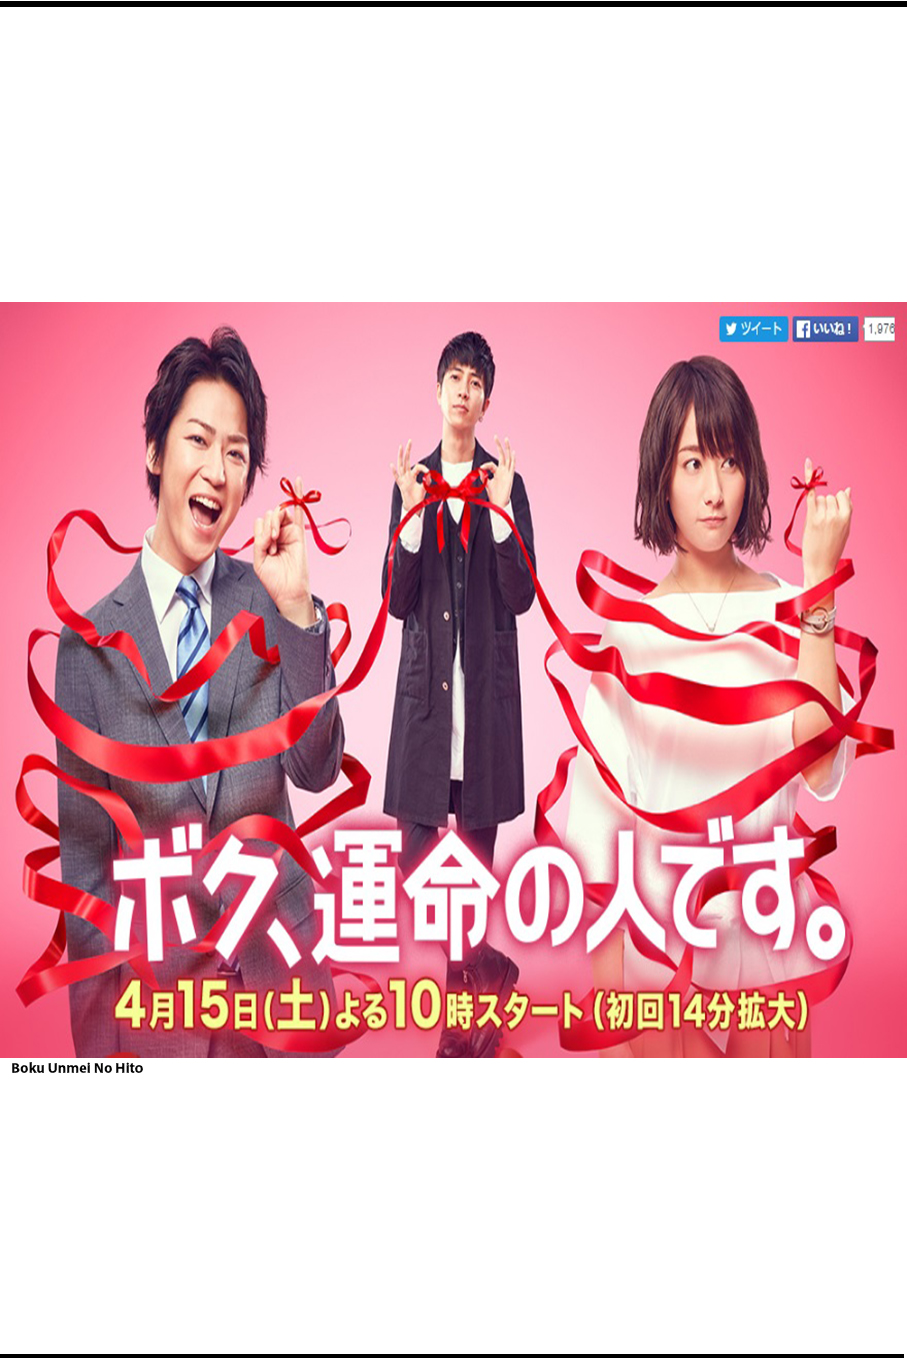 Boku Unmei No hito Desu aka. I'm Your Destiny [2017 Japan Series] 10 eps END (2) Comedy, Romance